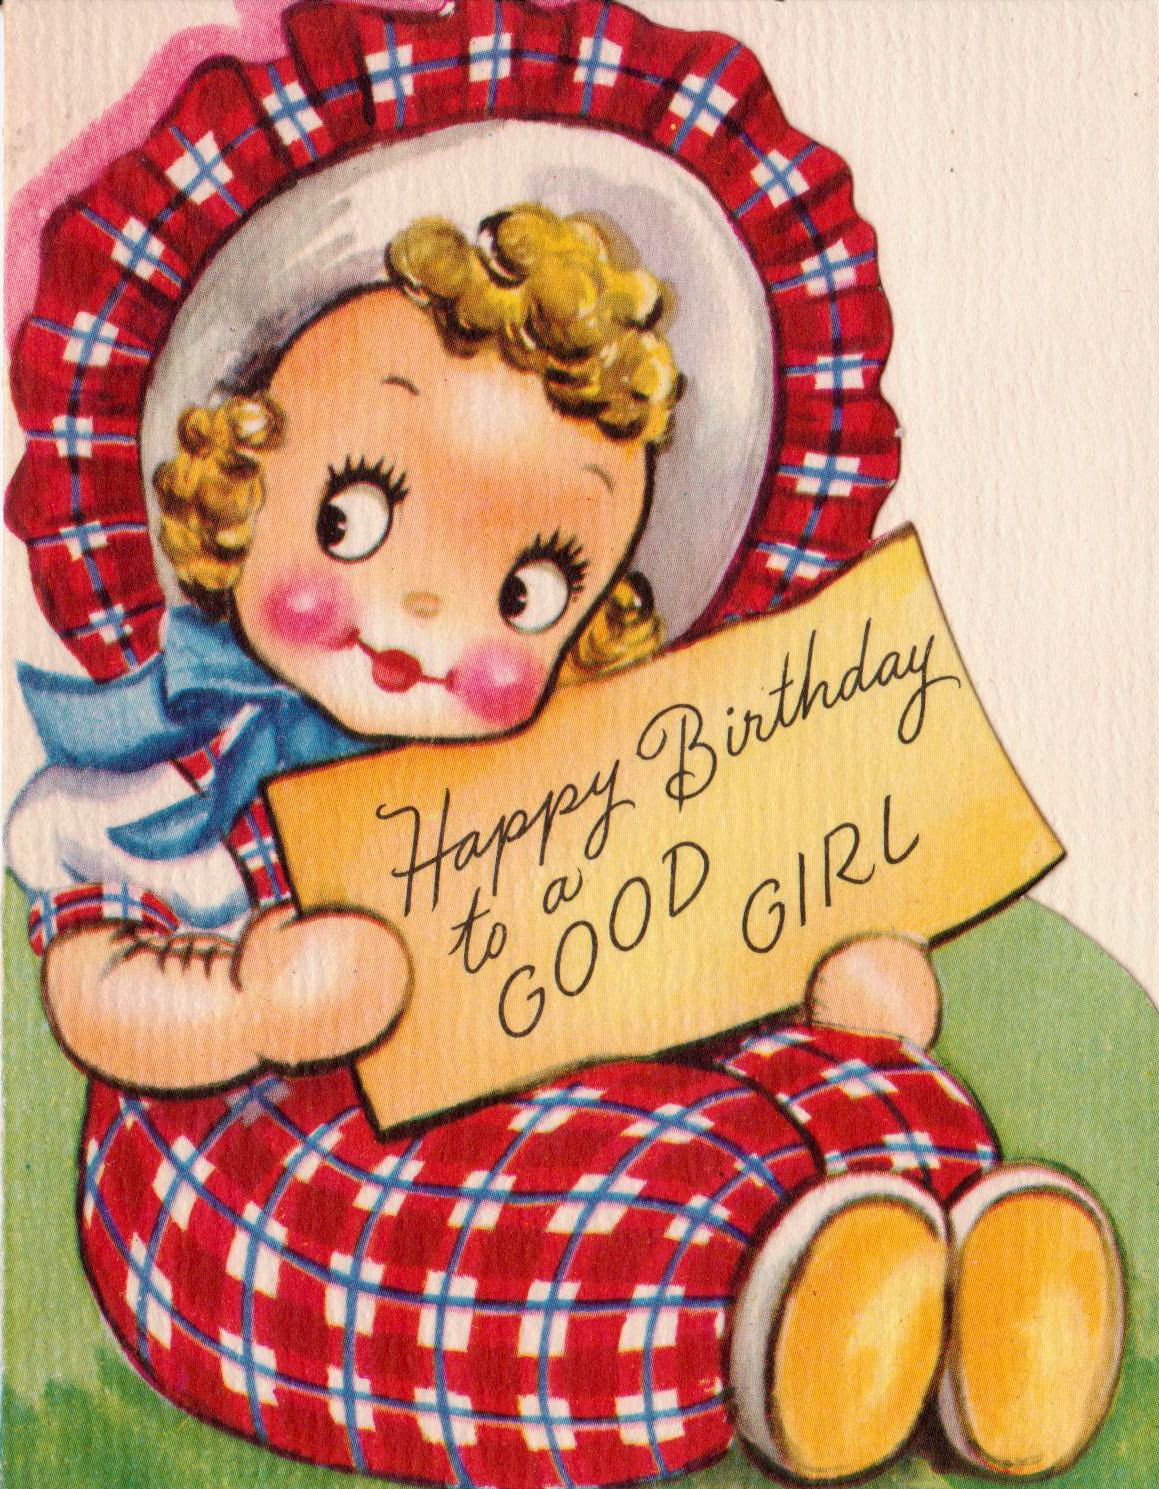 Pin By Ann Kautz On Vintage Birthday Pinterest 1950s Vintage